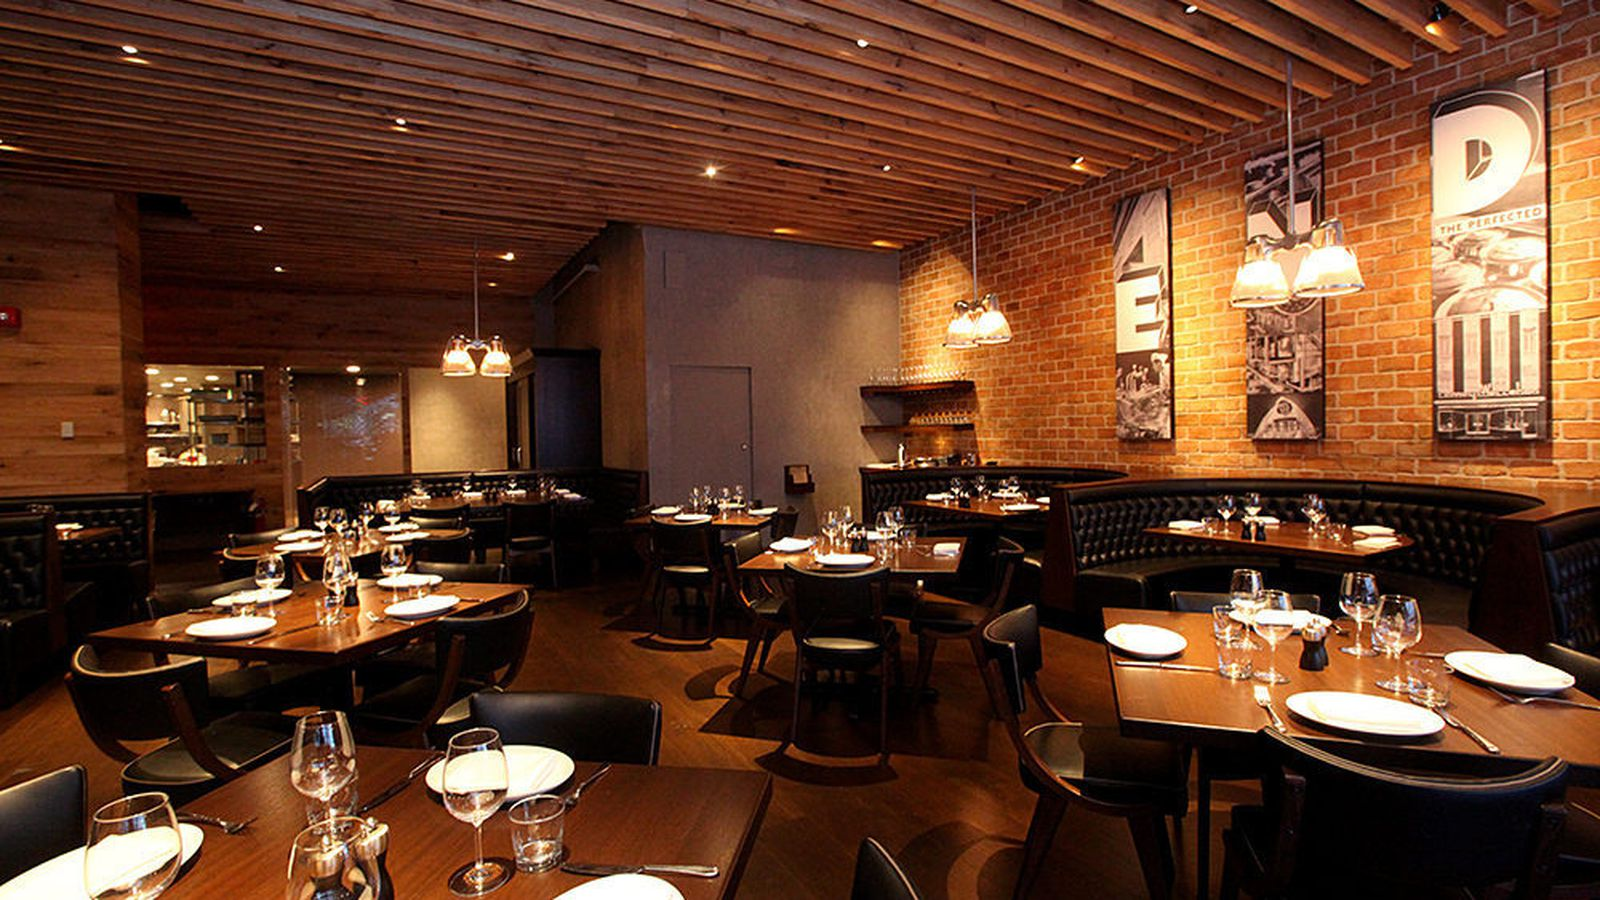 Enduro a new american restaurant from alan rosen eater ny for American cuisine restaurants